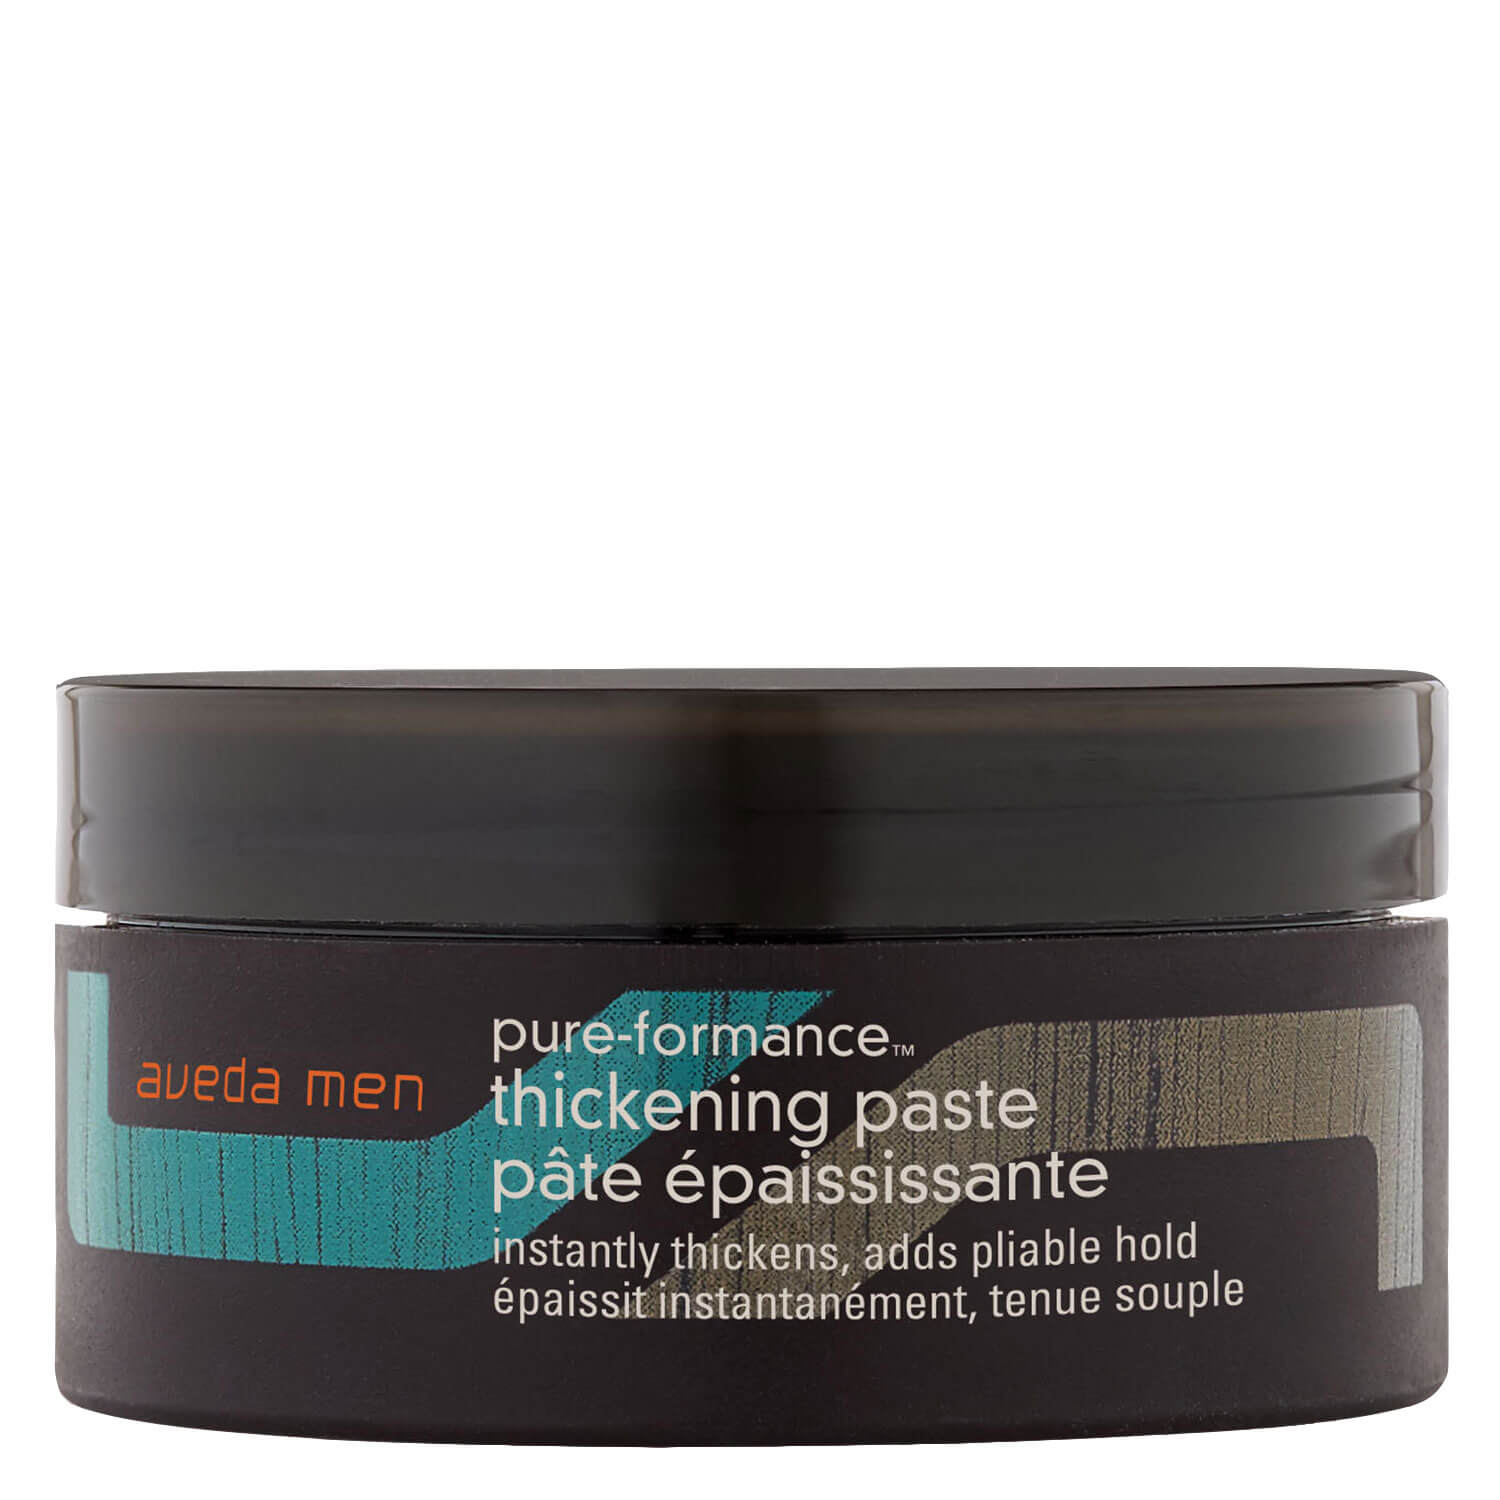 men pure-formance - thickening paste